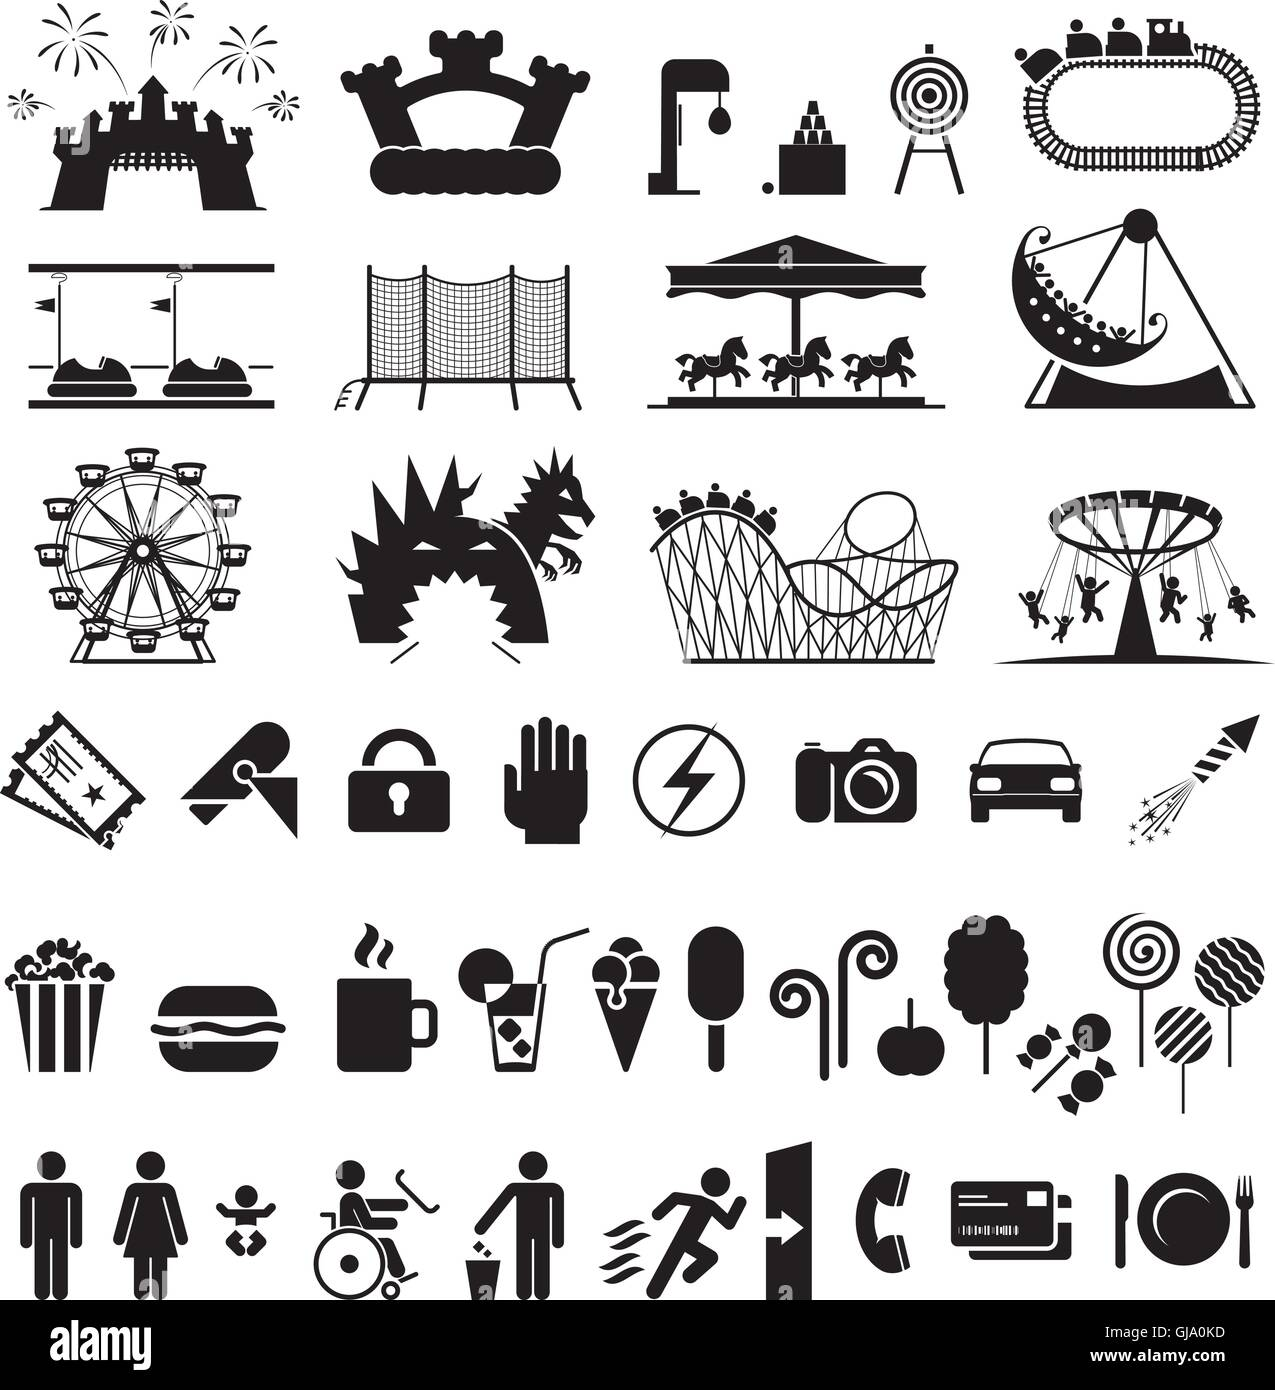 Amusement park icons. - Stock Vector